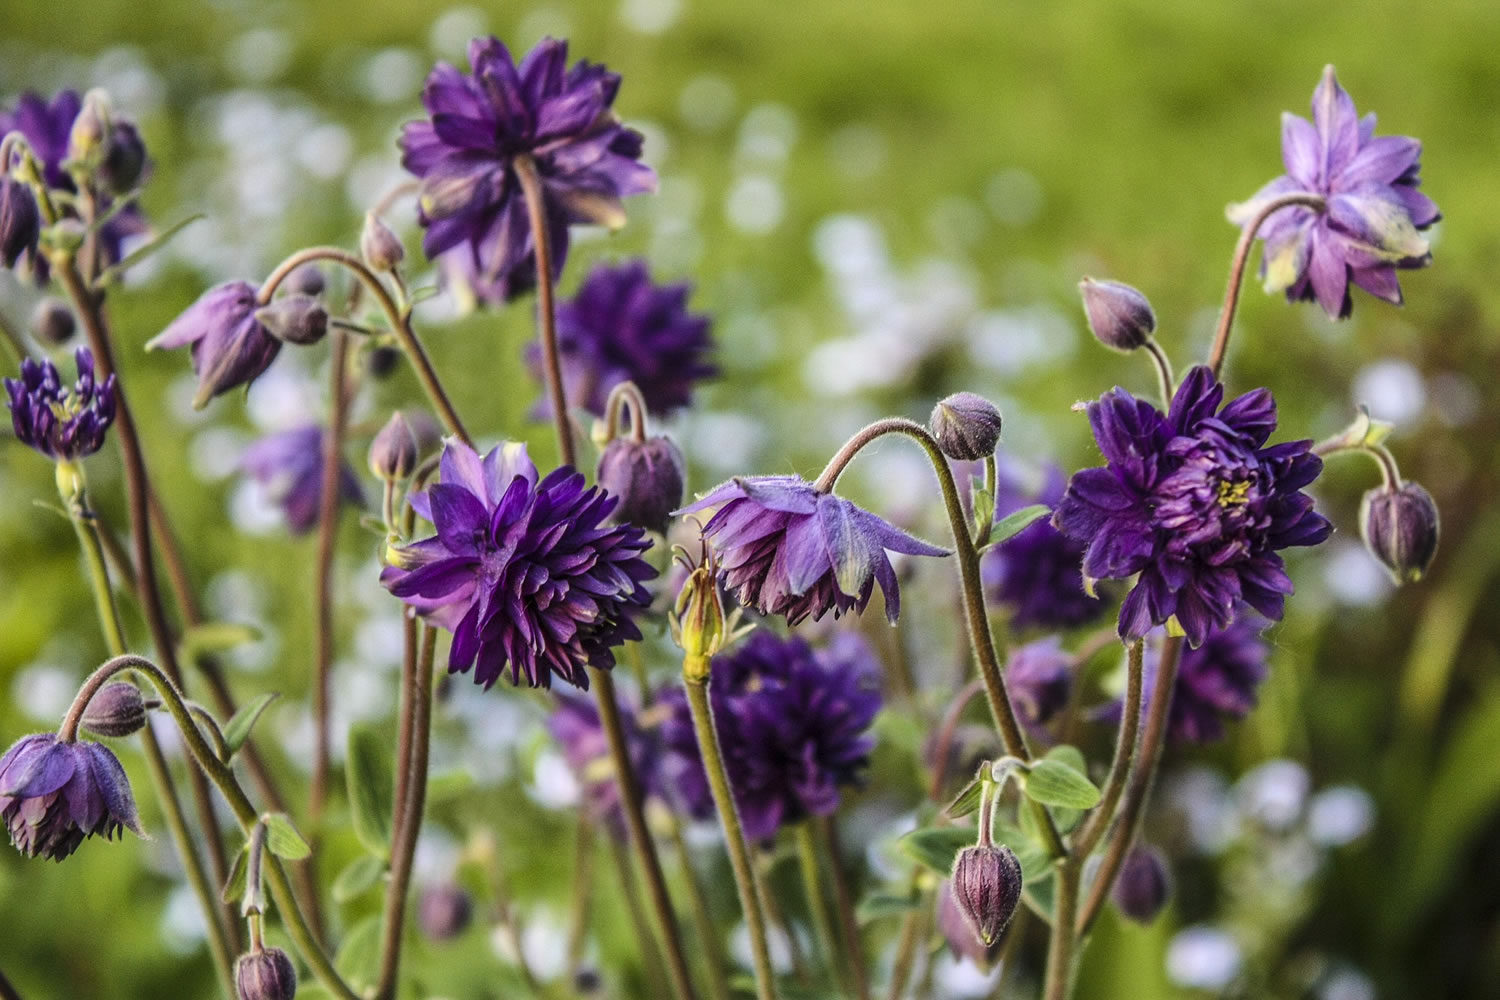 The purple columbine are dancing all around our yard right now signaling summer's soon arrival. Photo by Diane Stevens May 20, 2014